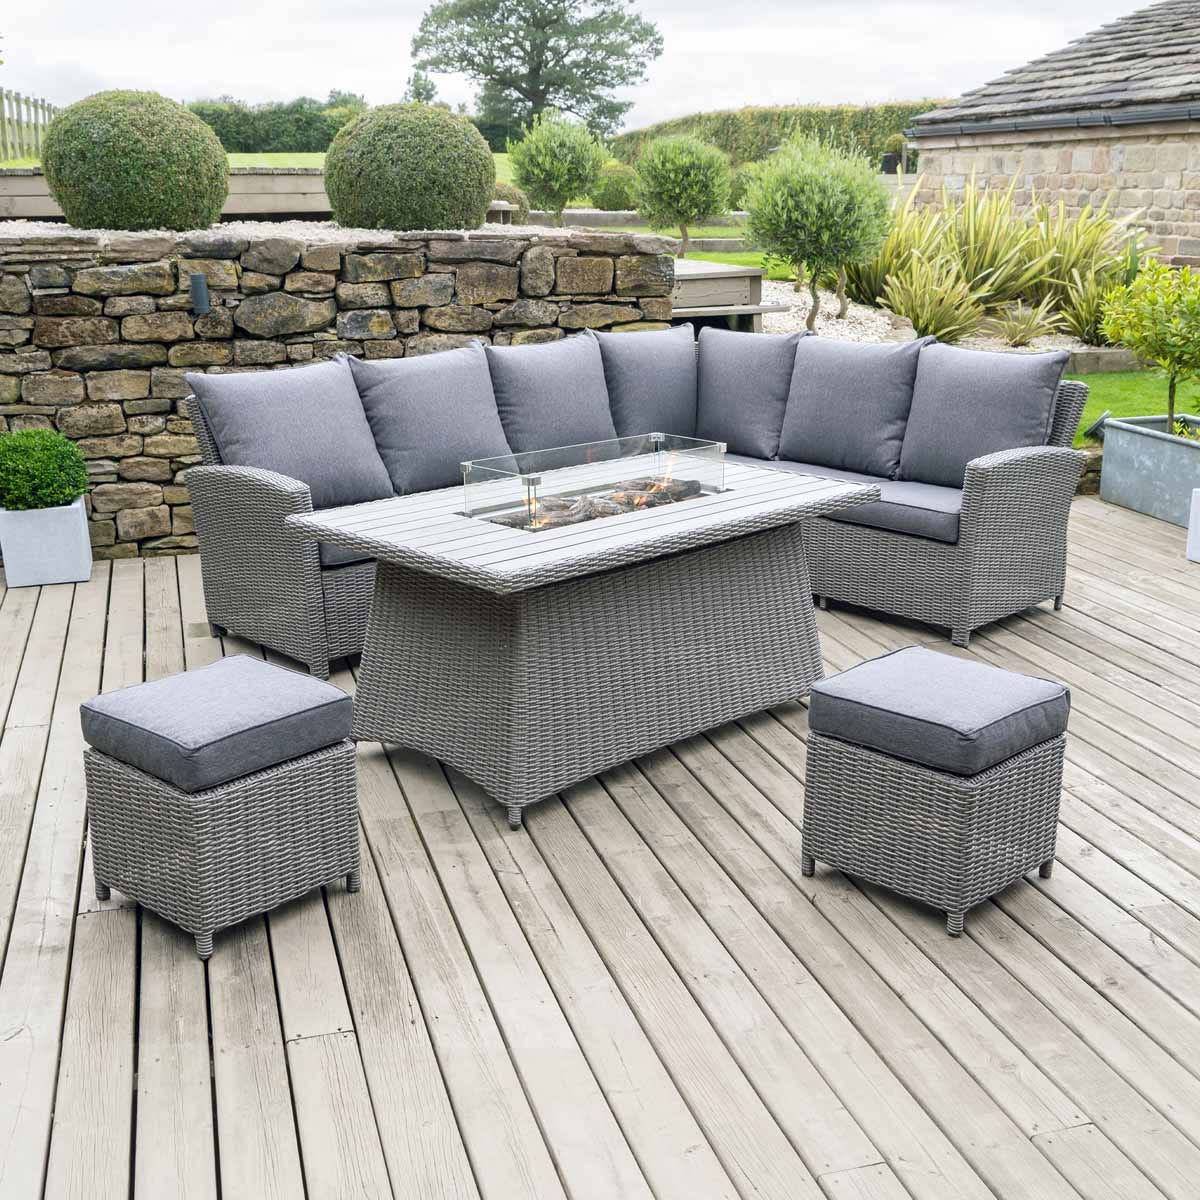 Pacific Lifestyle Barbados Relaxed Dining Corner Set with Fire Pit Table - Slate Grey